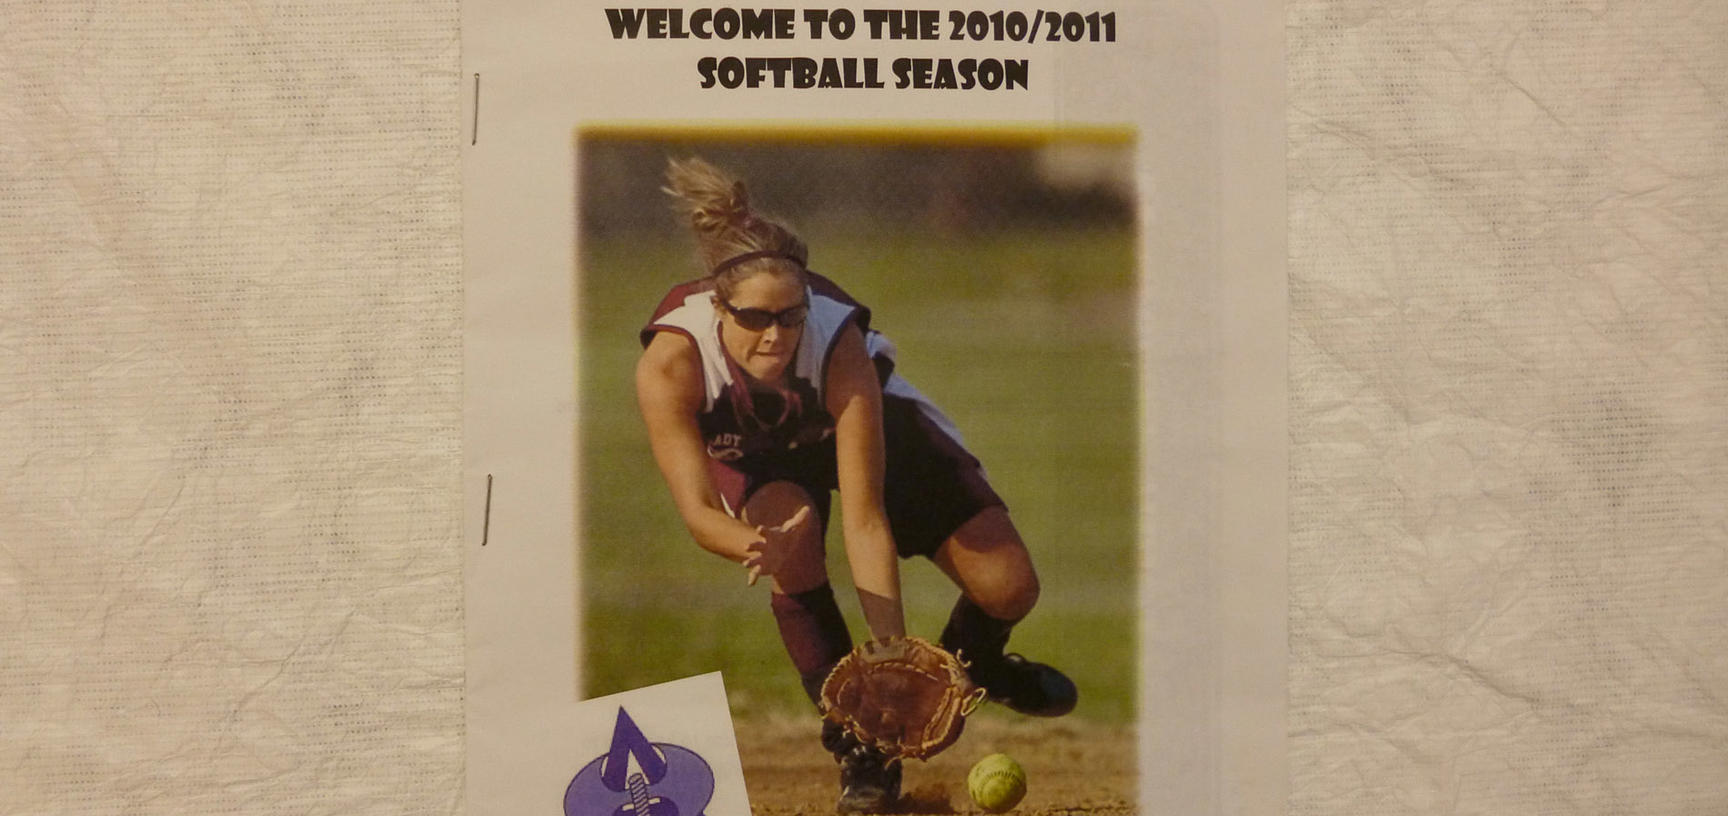 White poster with image of woman playing softball, black text and purple Amazons team logo.